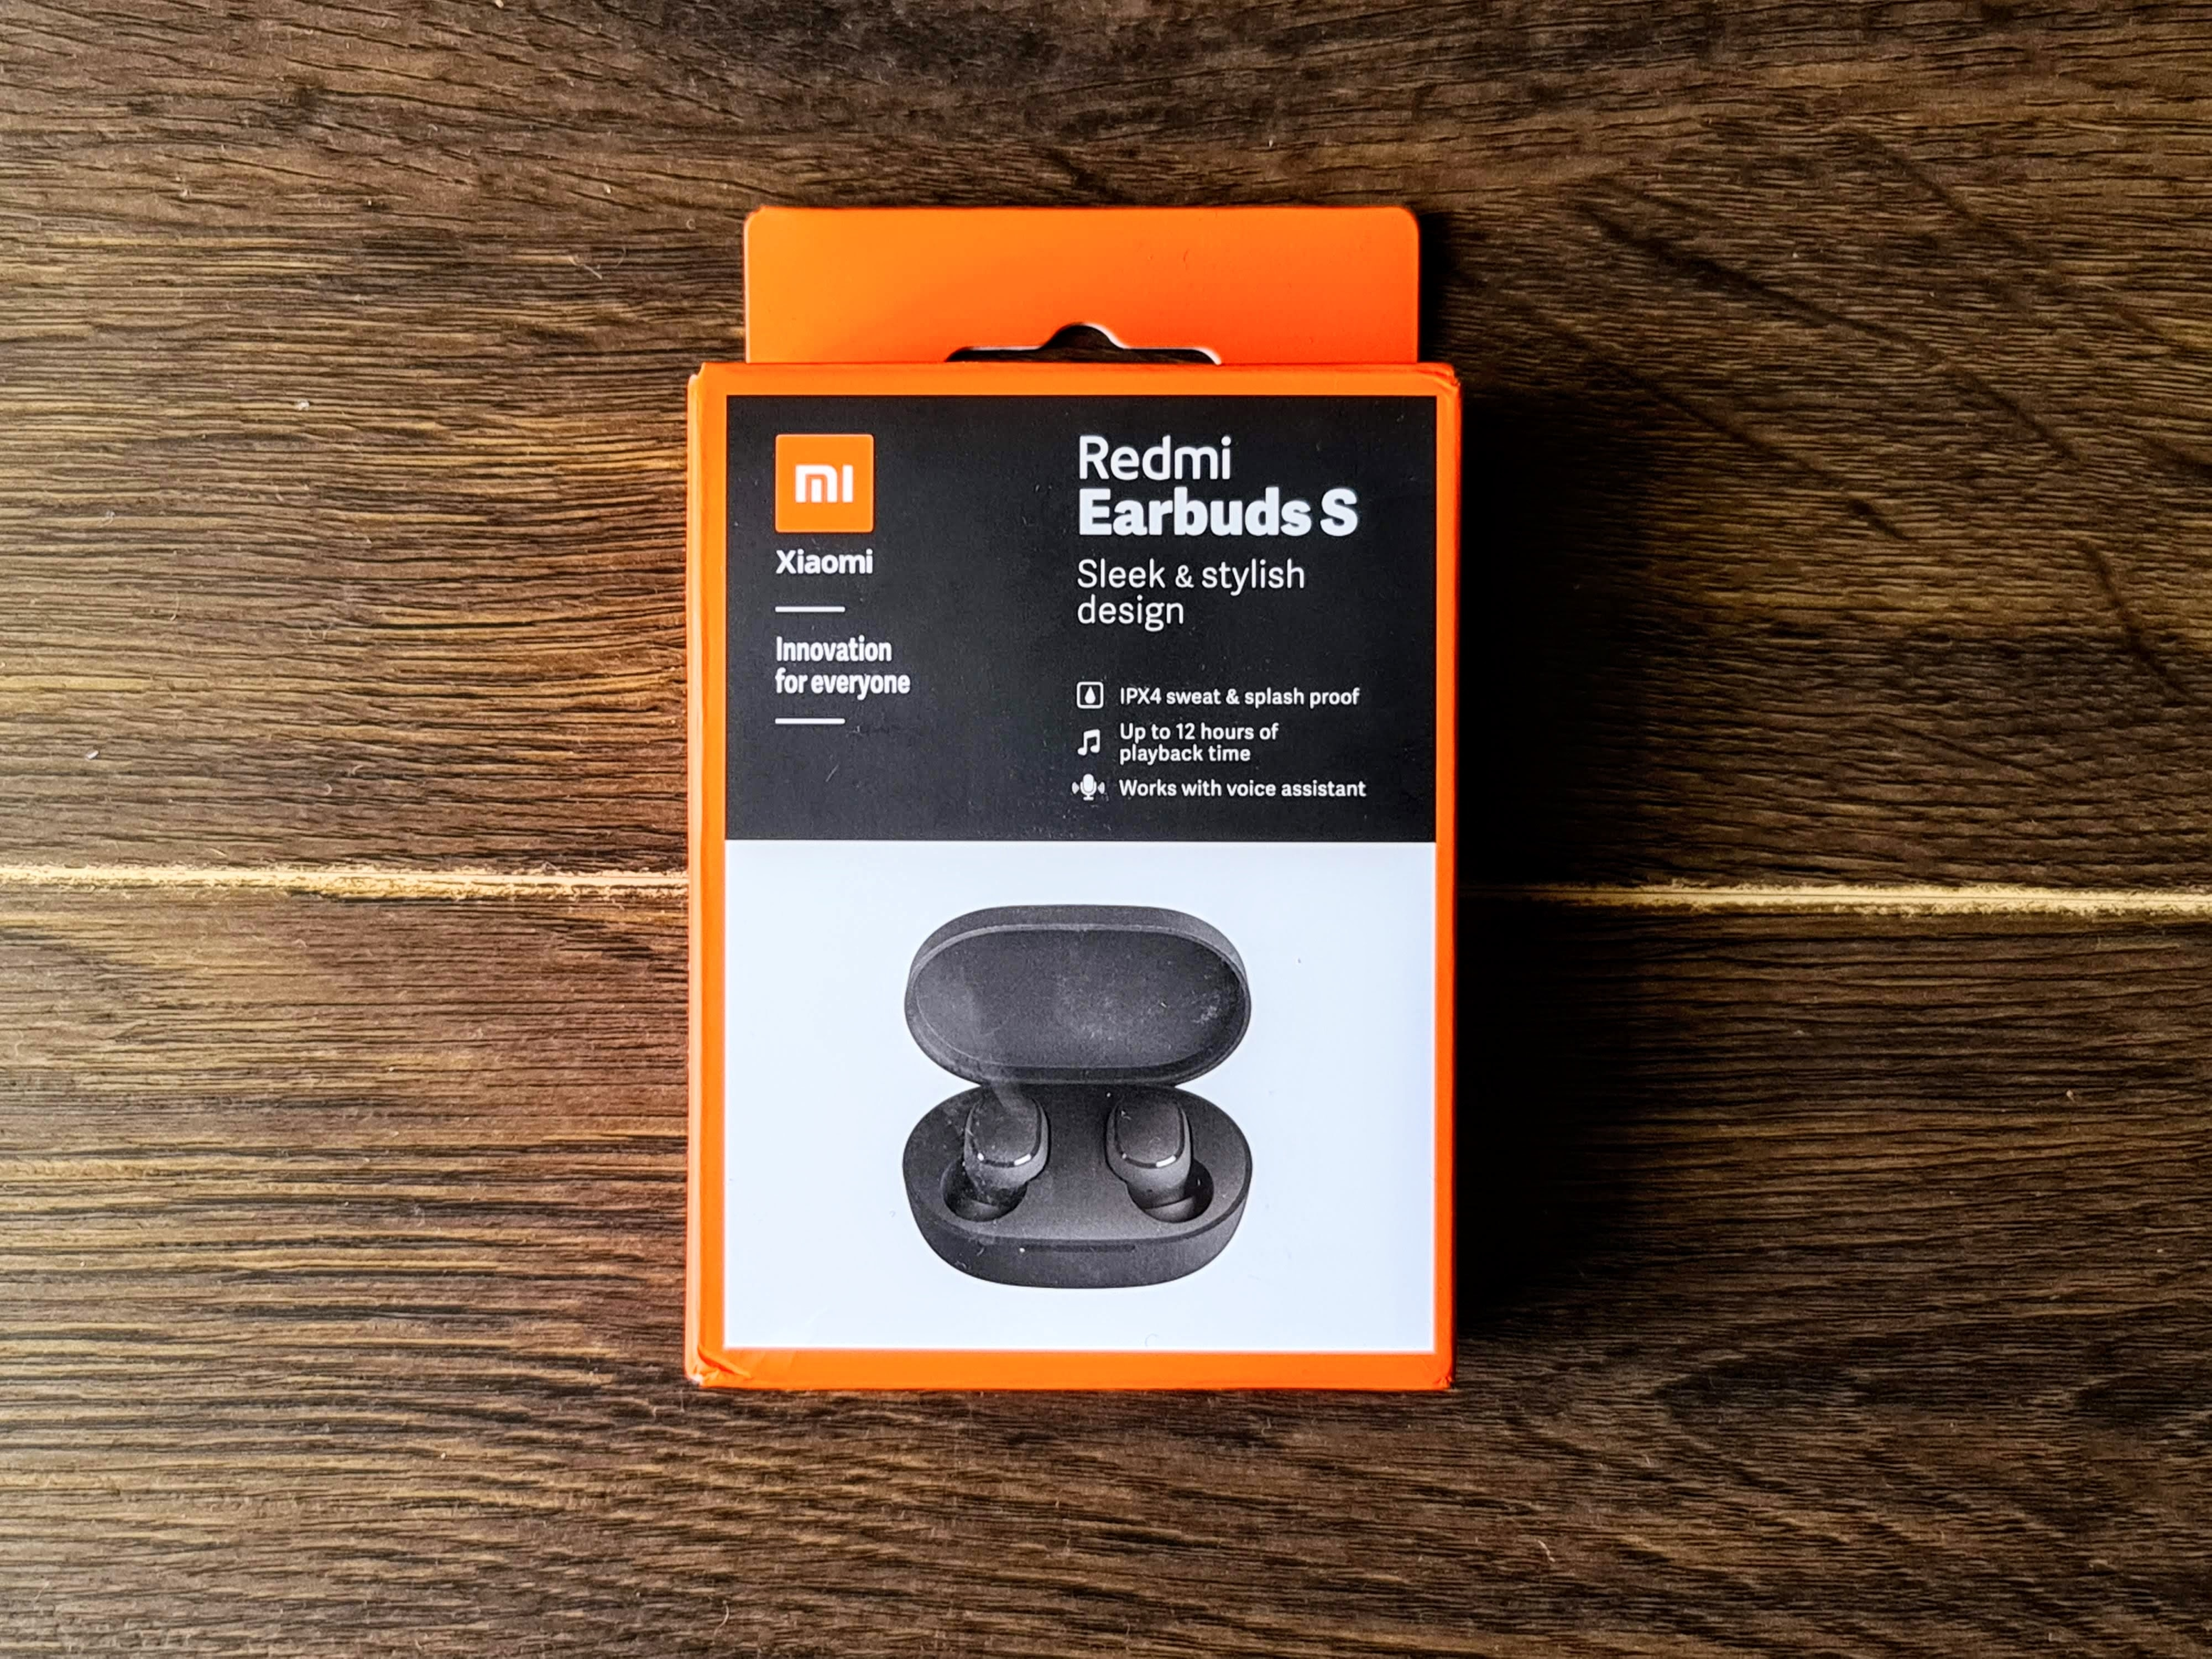 This is the retail box of Redmi Earbuds S.